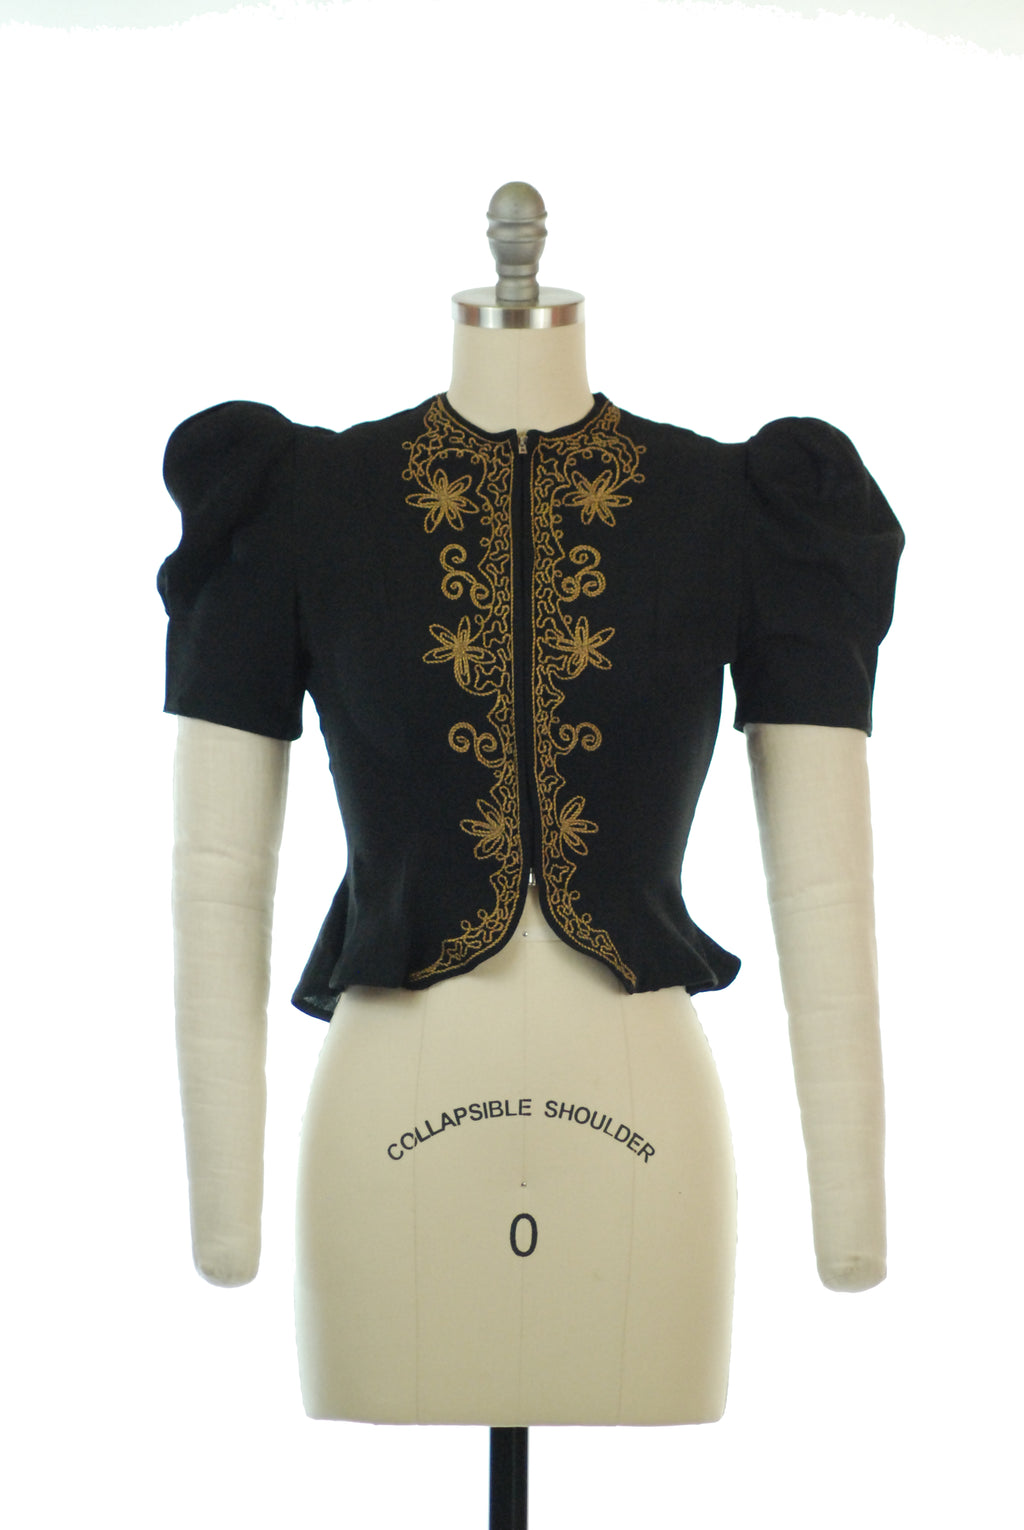 Phenomenal 1930s Puffed Sleeve Black Zip Front Blouse with Golden Soutache